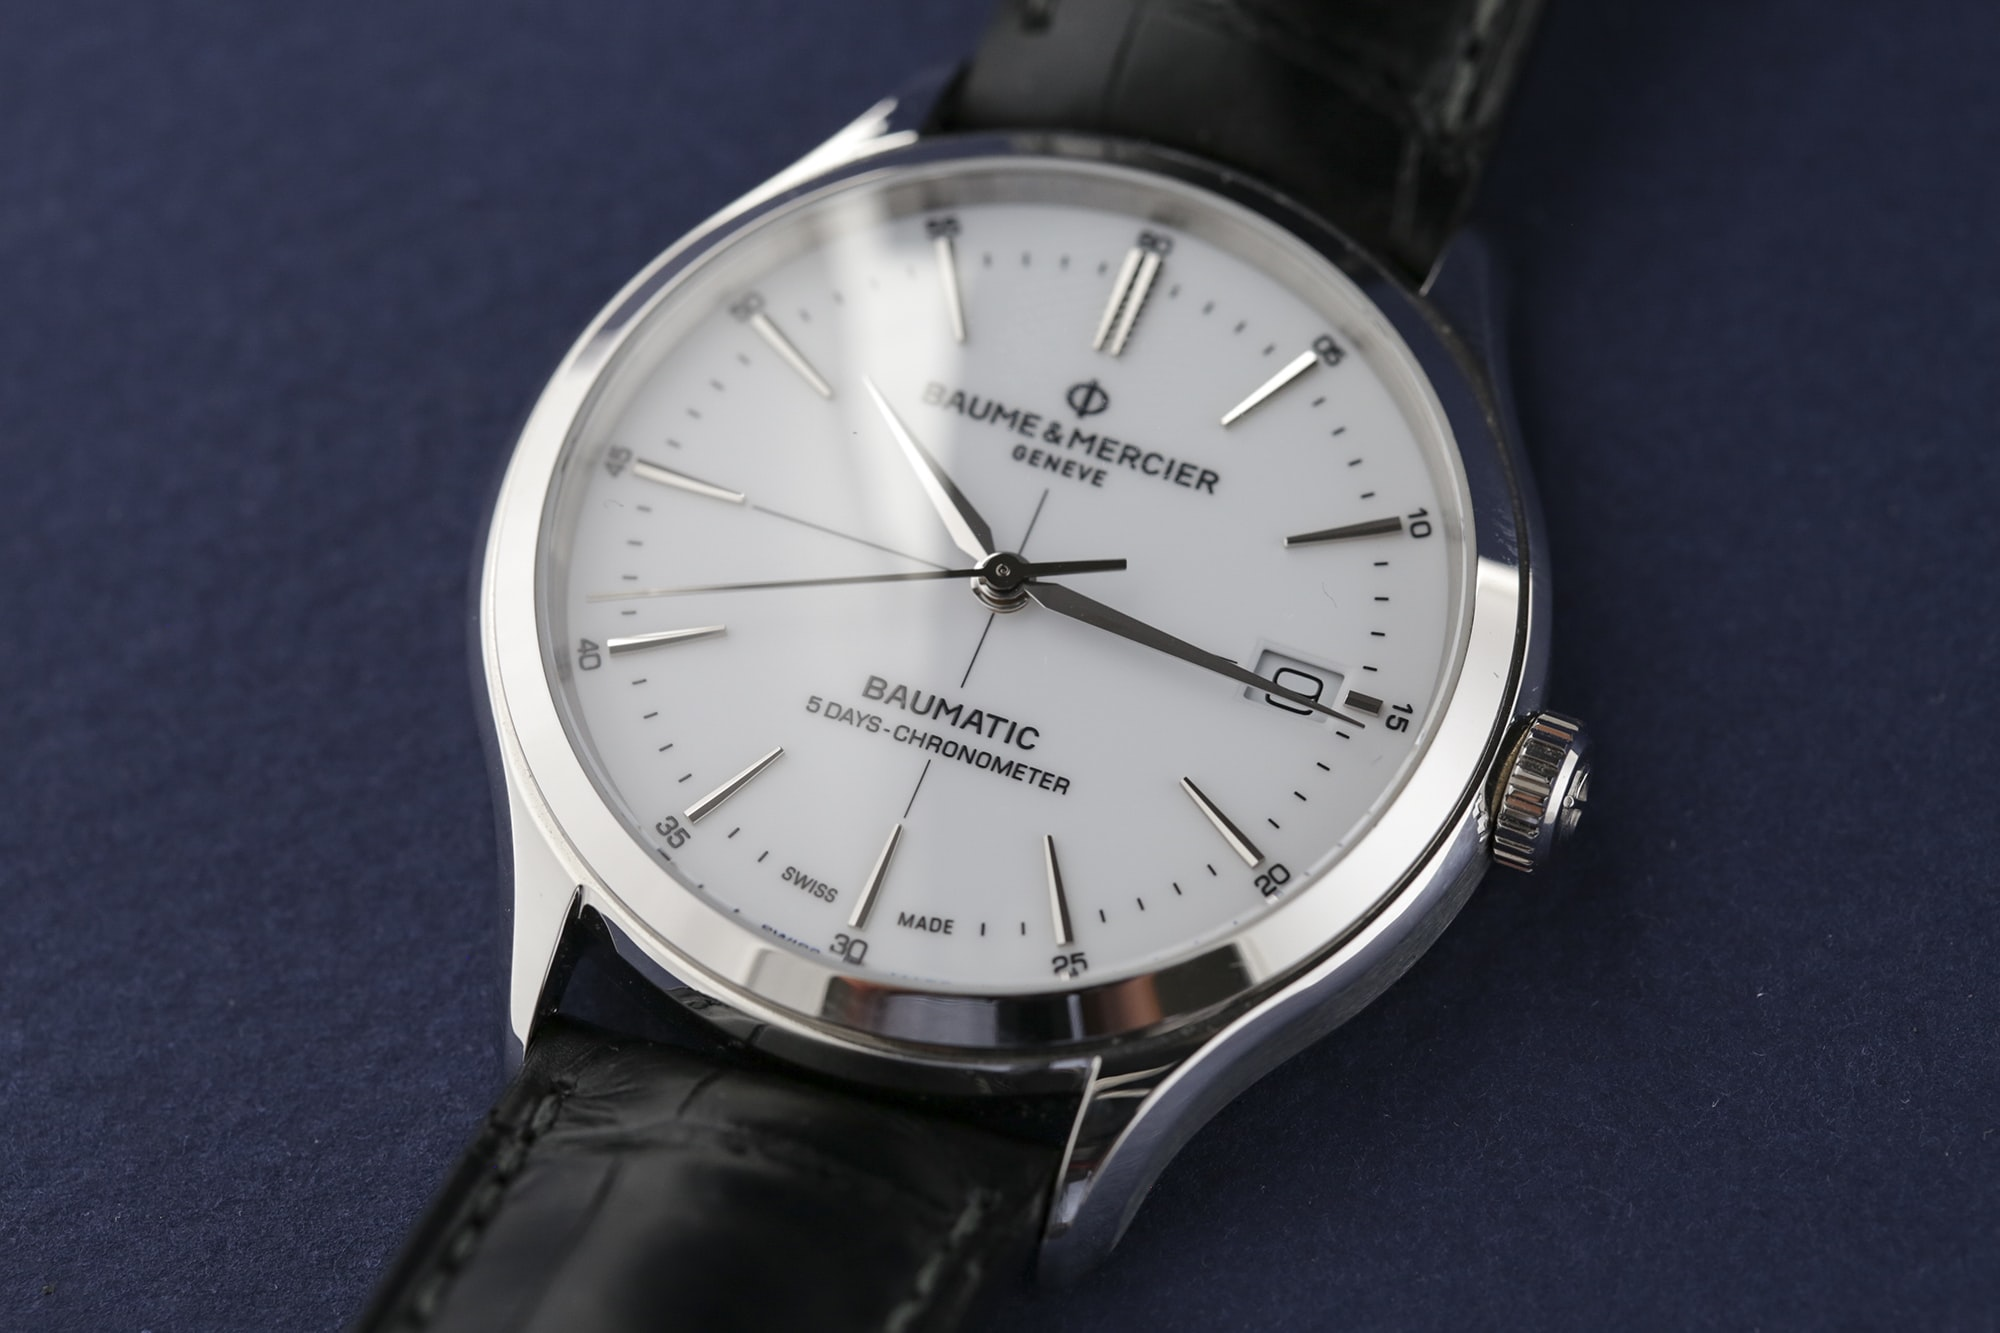 A Week On The Wrist: The Baume & Mercier Clifton Baumatic COSC 3H0A9735